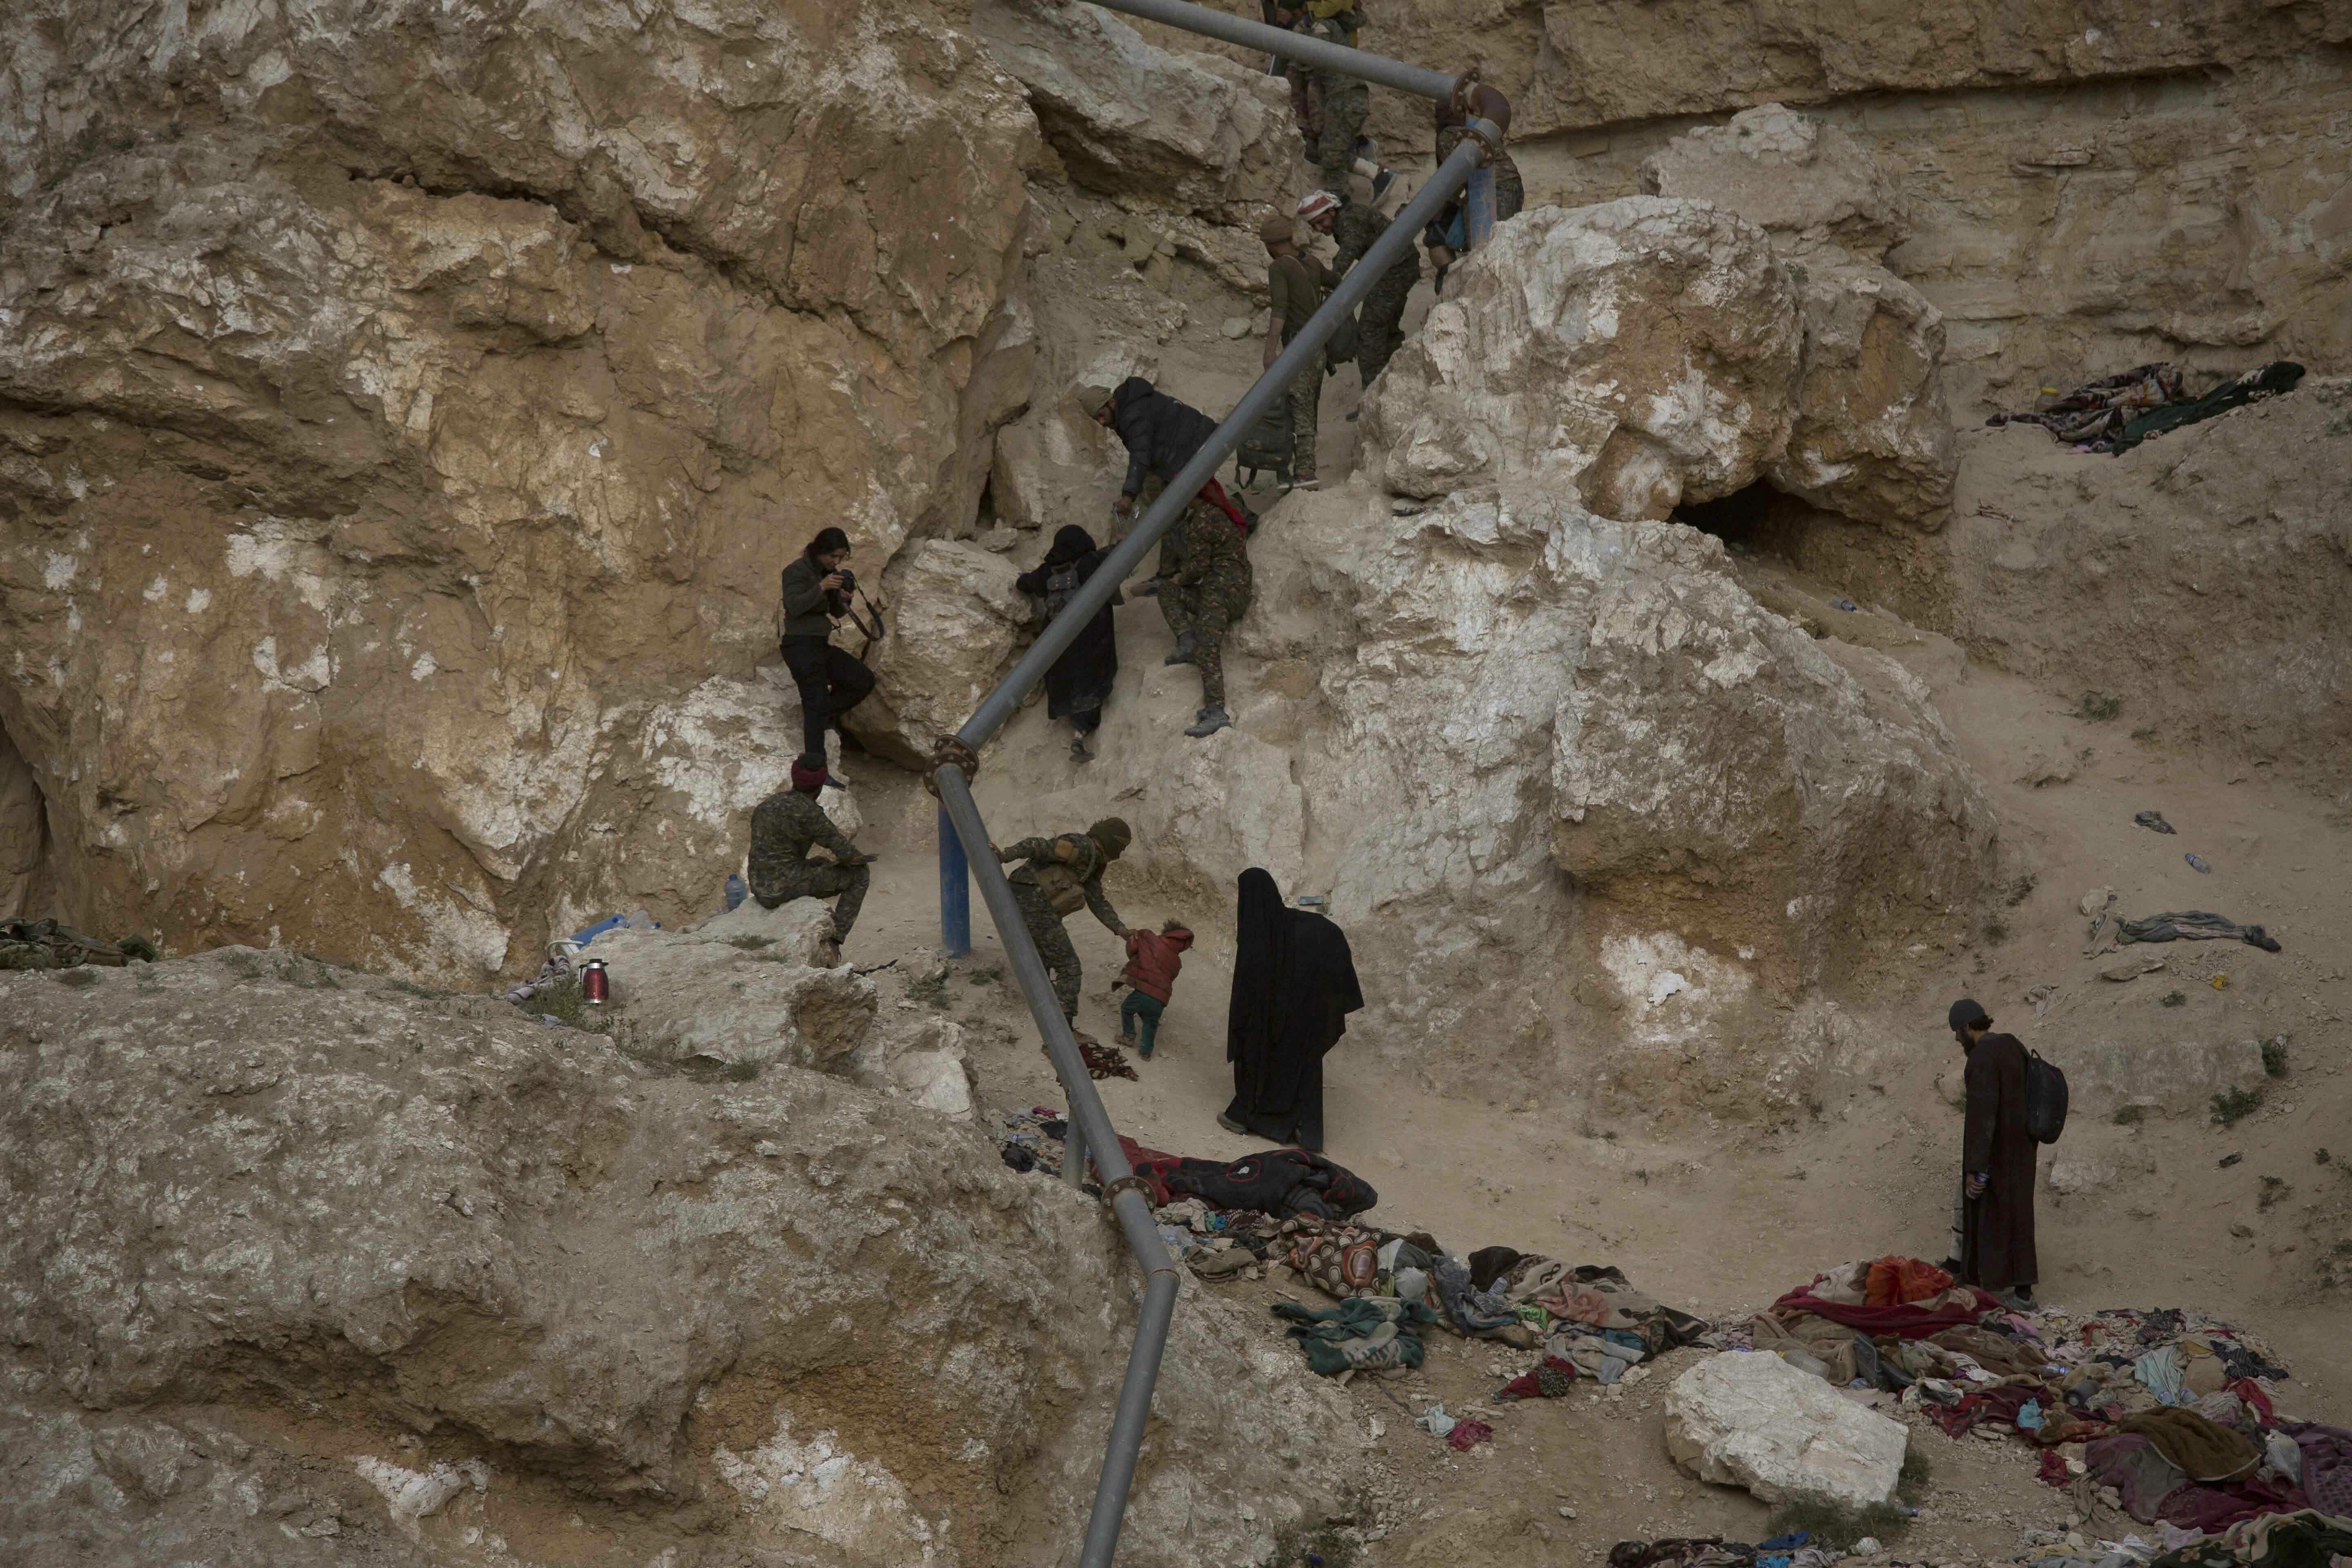 IS suicide attacks highlight perils of Syria campaign